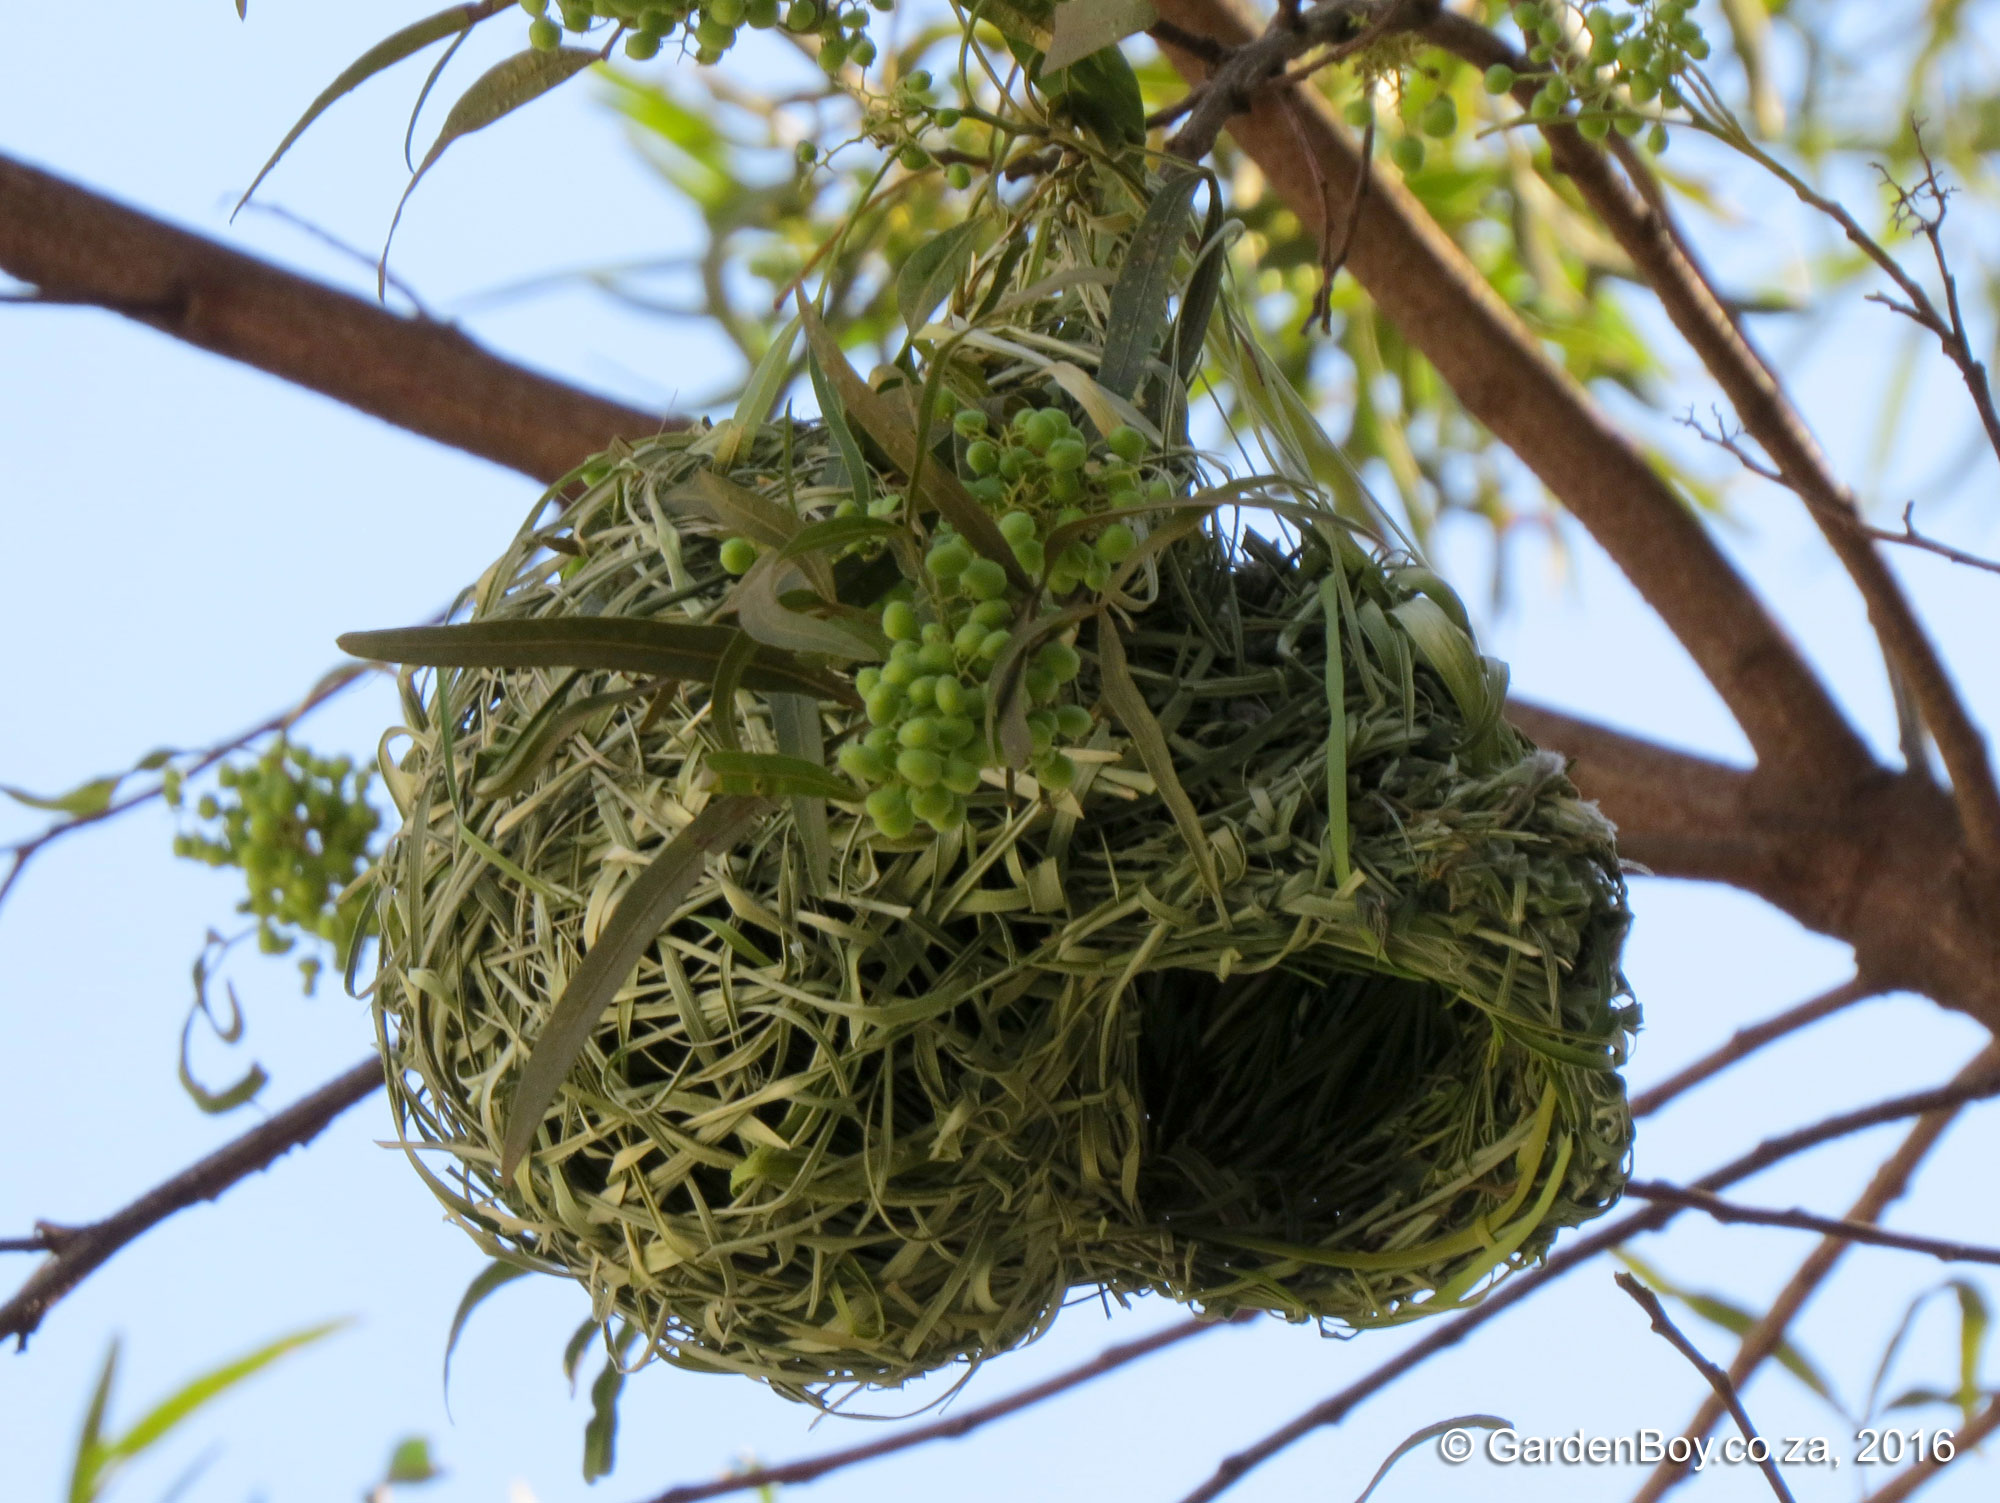 Southern Masked-Weaver photo 03